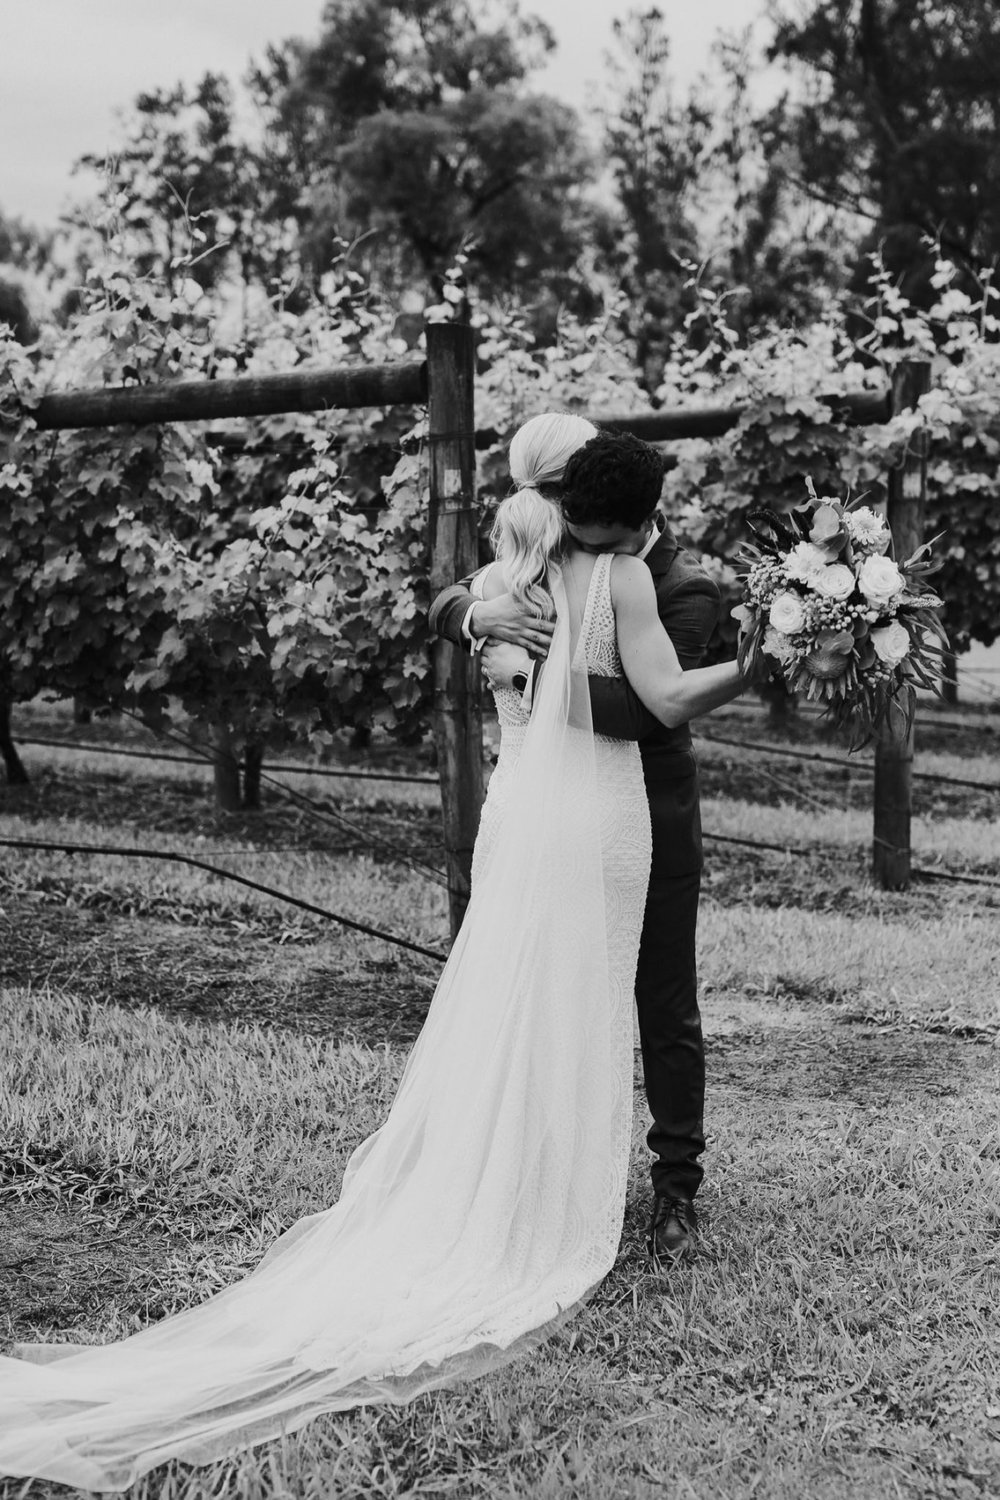 Immerse Yarra Valley Winery Wedding Photography74.jpg